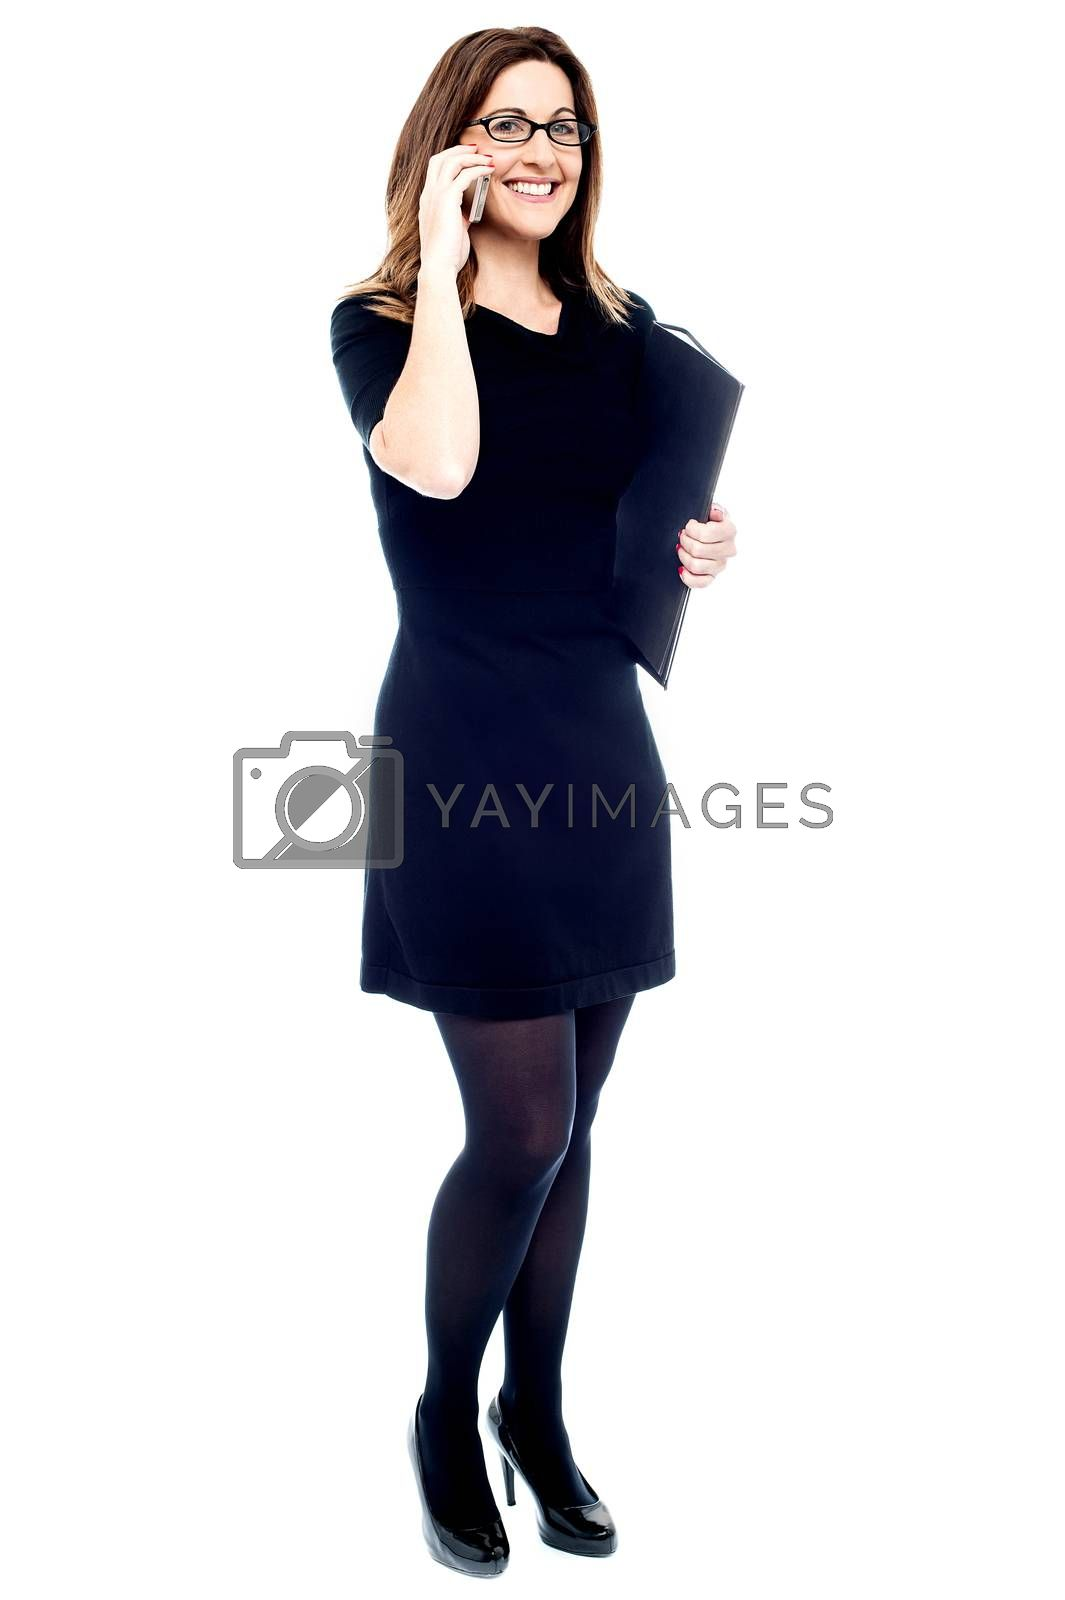 Corporate woman with files, talking on mobile phone.